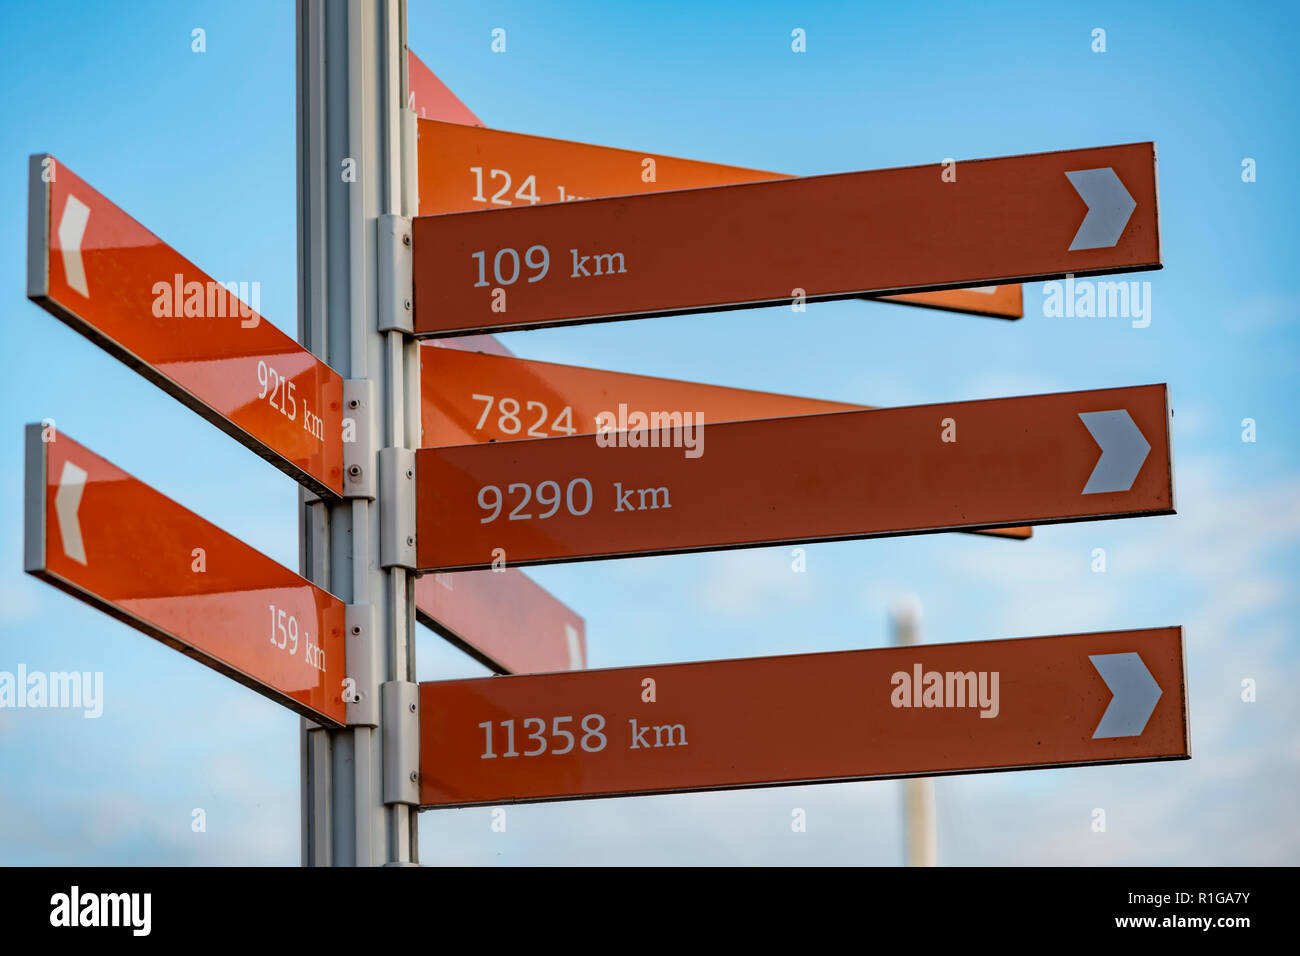 Direction pole indicating the direction of several cities and the distance from the current position in kilometer unit - Stock Image